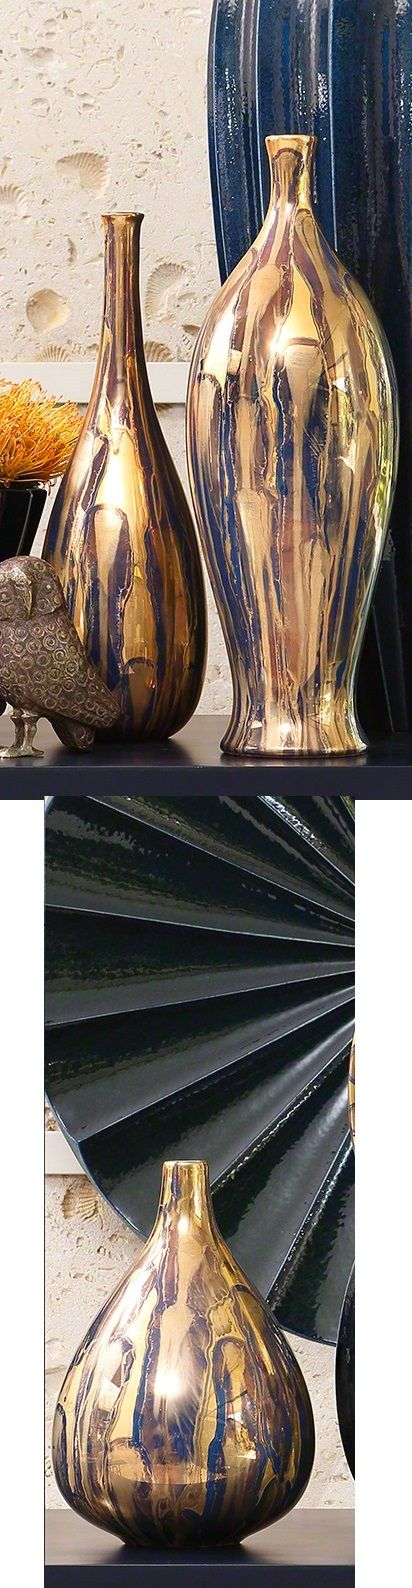 Gold Vases | Gold Vases | Gold Vase | Gold Vase | Gold Jars | Gold Jars | Gold Jar | Gold Jar | Gold Temple Jars | Gold Temple Jar | Gold Ceramics | Gold Porcelain | Gold Porcelains | Gold Ceramic | Gold Jars and Vases | Gold Porcelain  | Gold Ceramic | A Beautiful Design Trending in HOLLYWOOD www.instyle-decor.com/gold-vases.html Enjoy